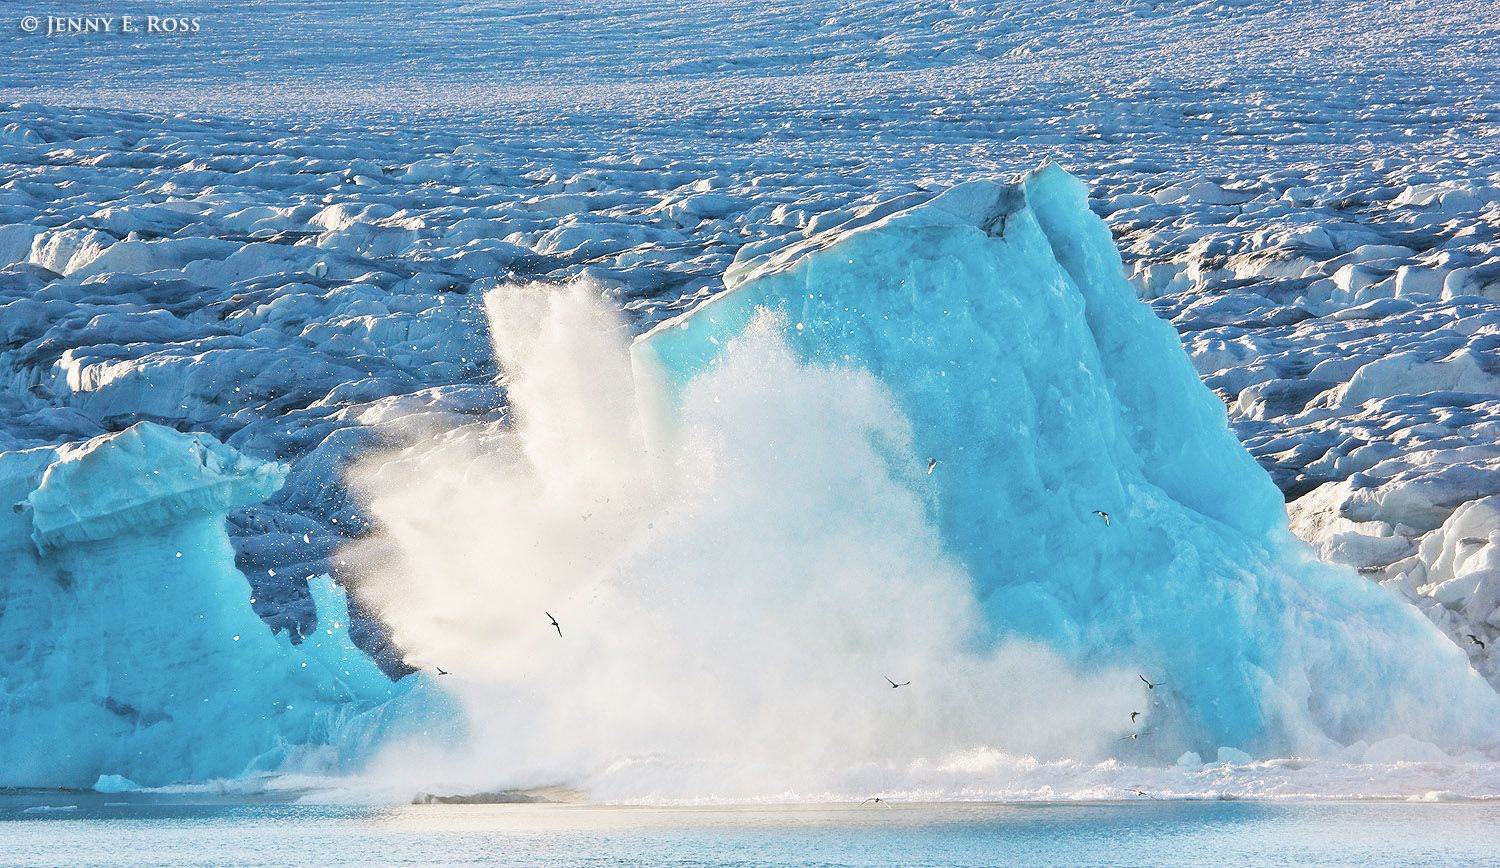 An immense chunk of ice calves away from Lilliehookbreen (Lilliehook Glacier) and collapses into the sea.